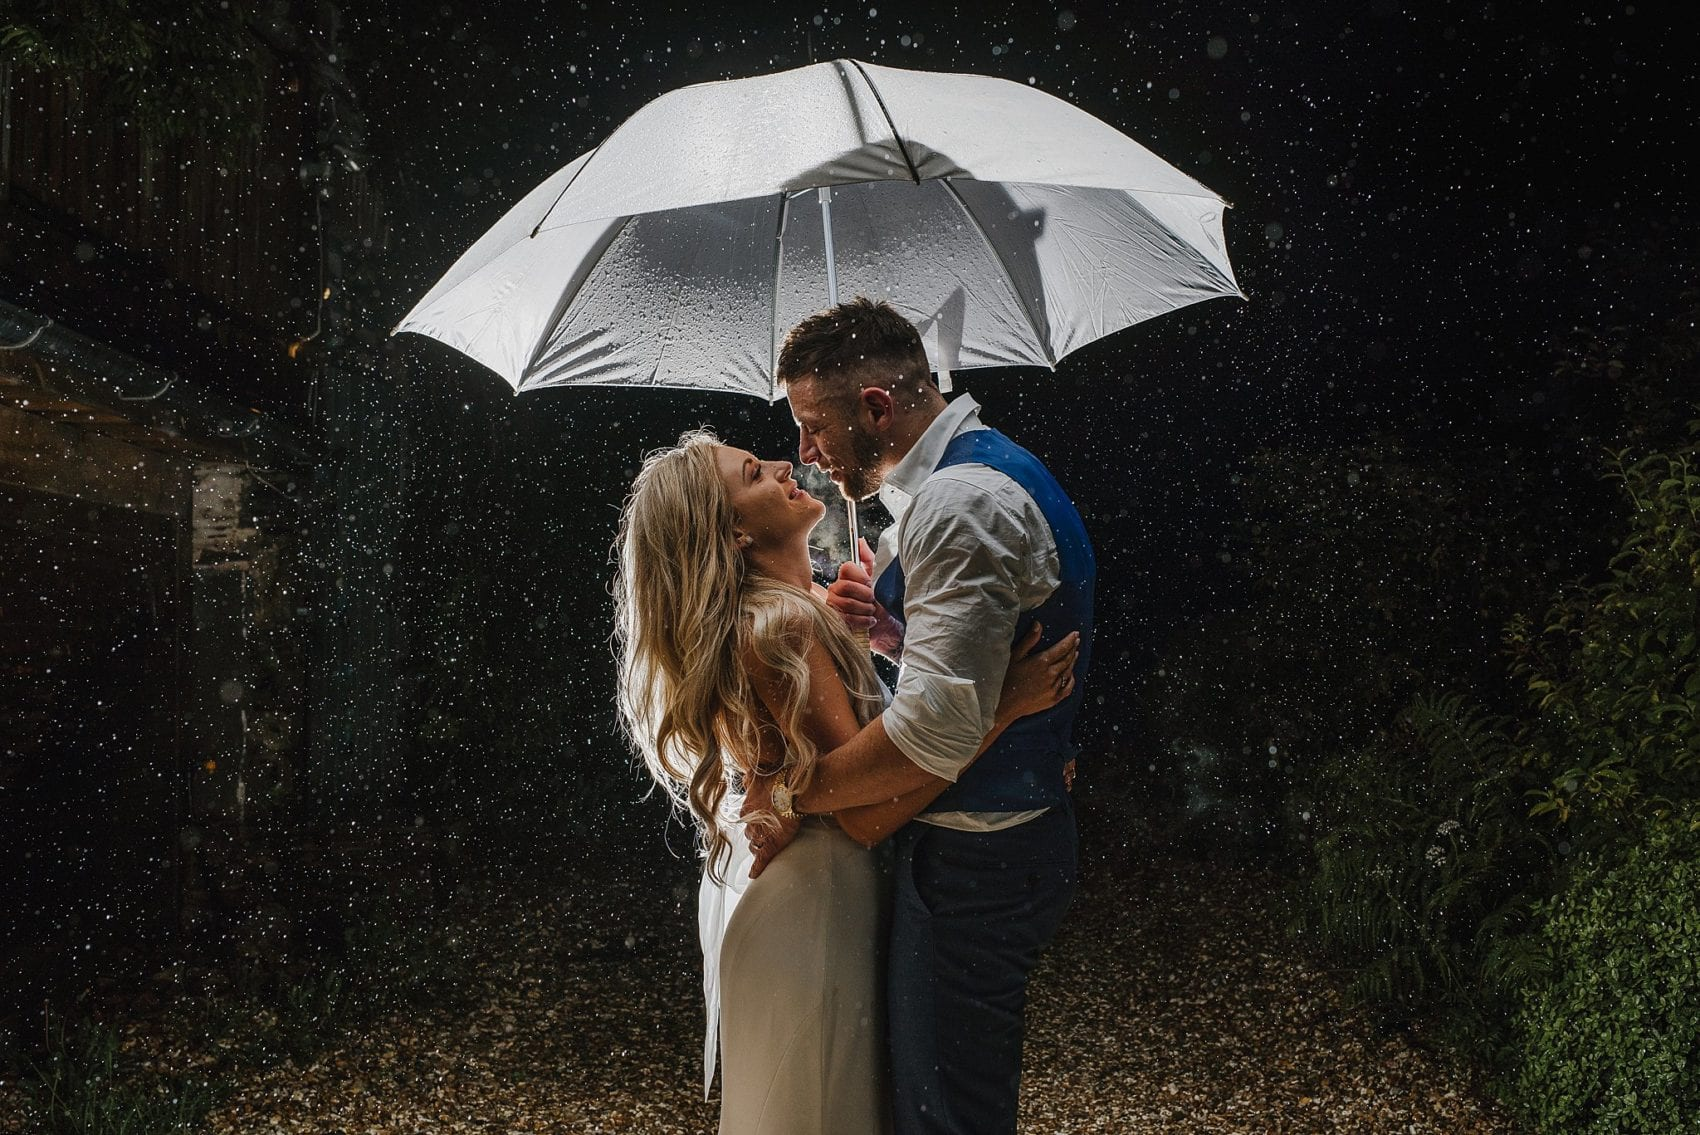 Rain On Your Wedding Day.The 3 Things You Need To Know About Rain On Your Wedding Day